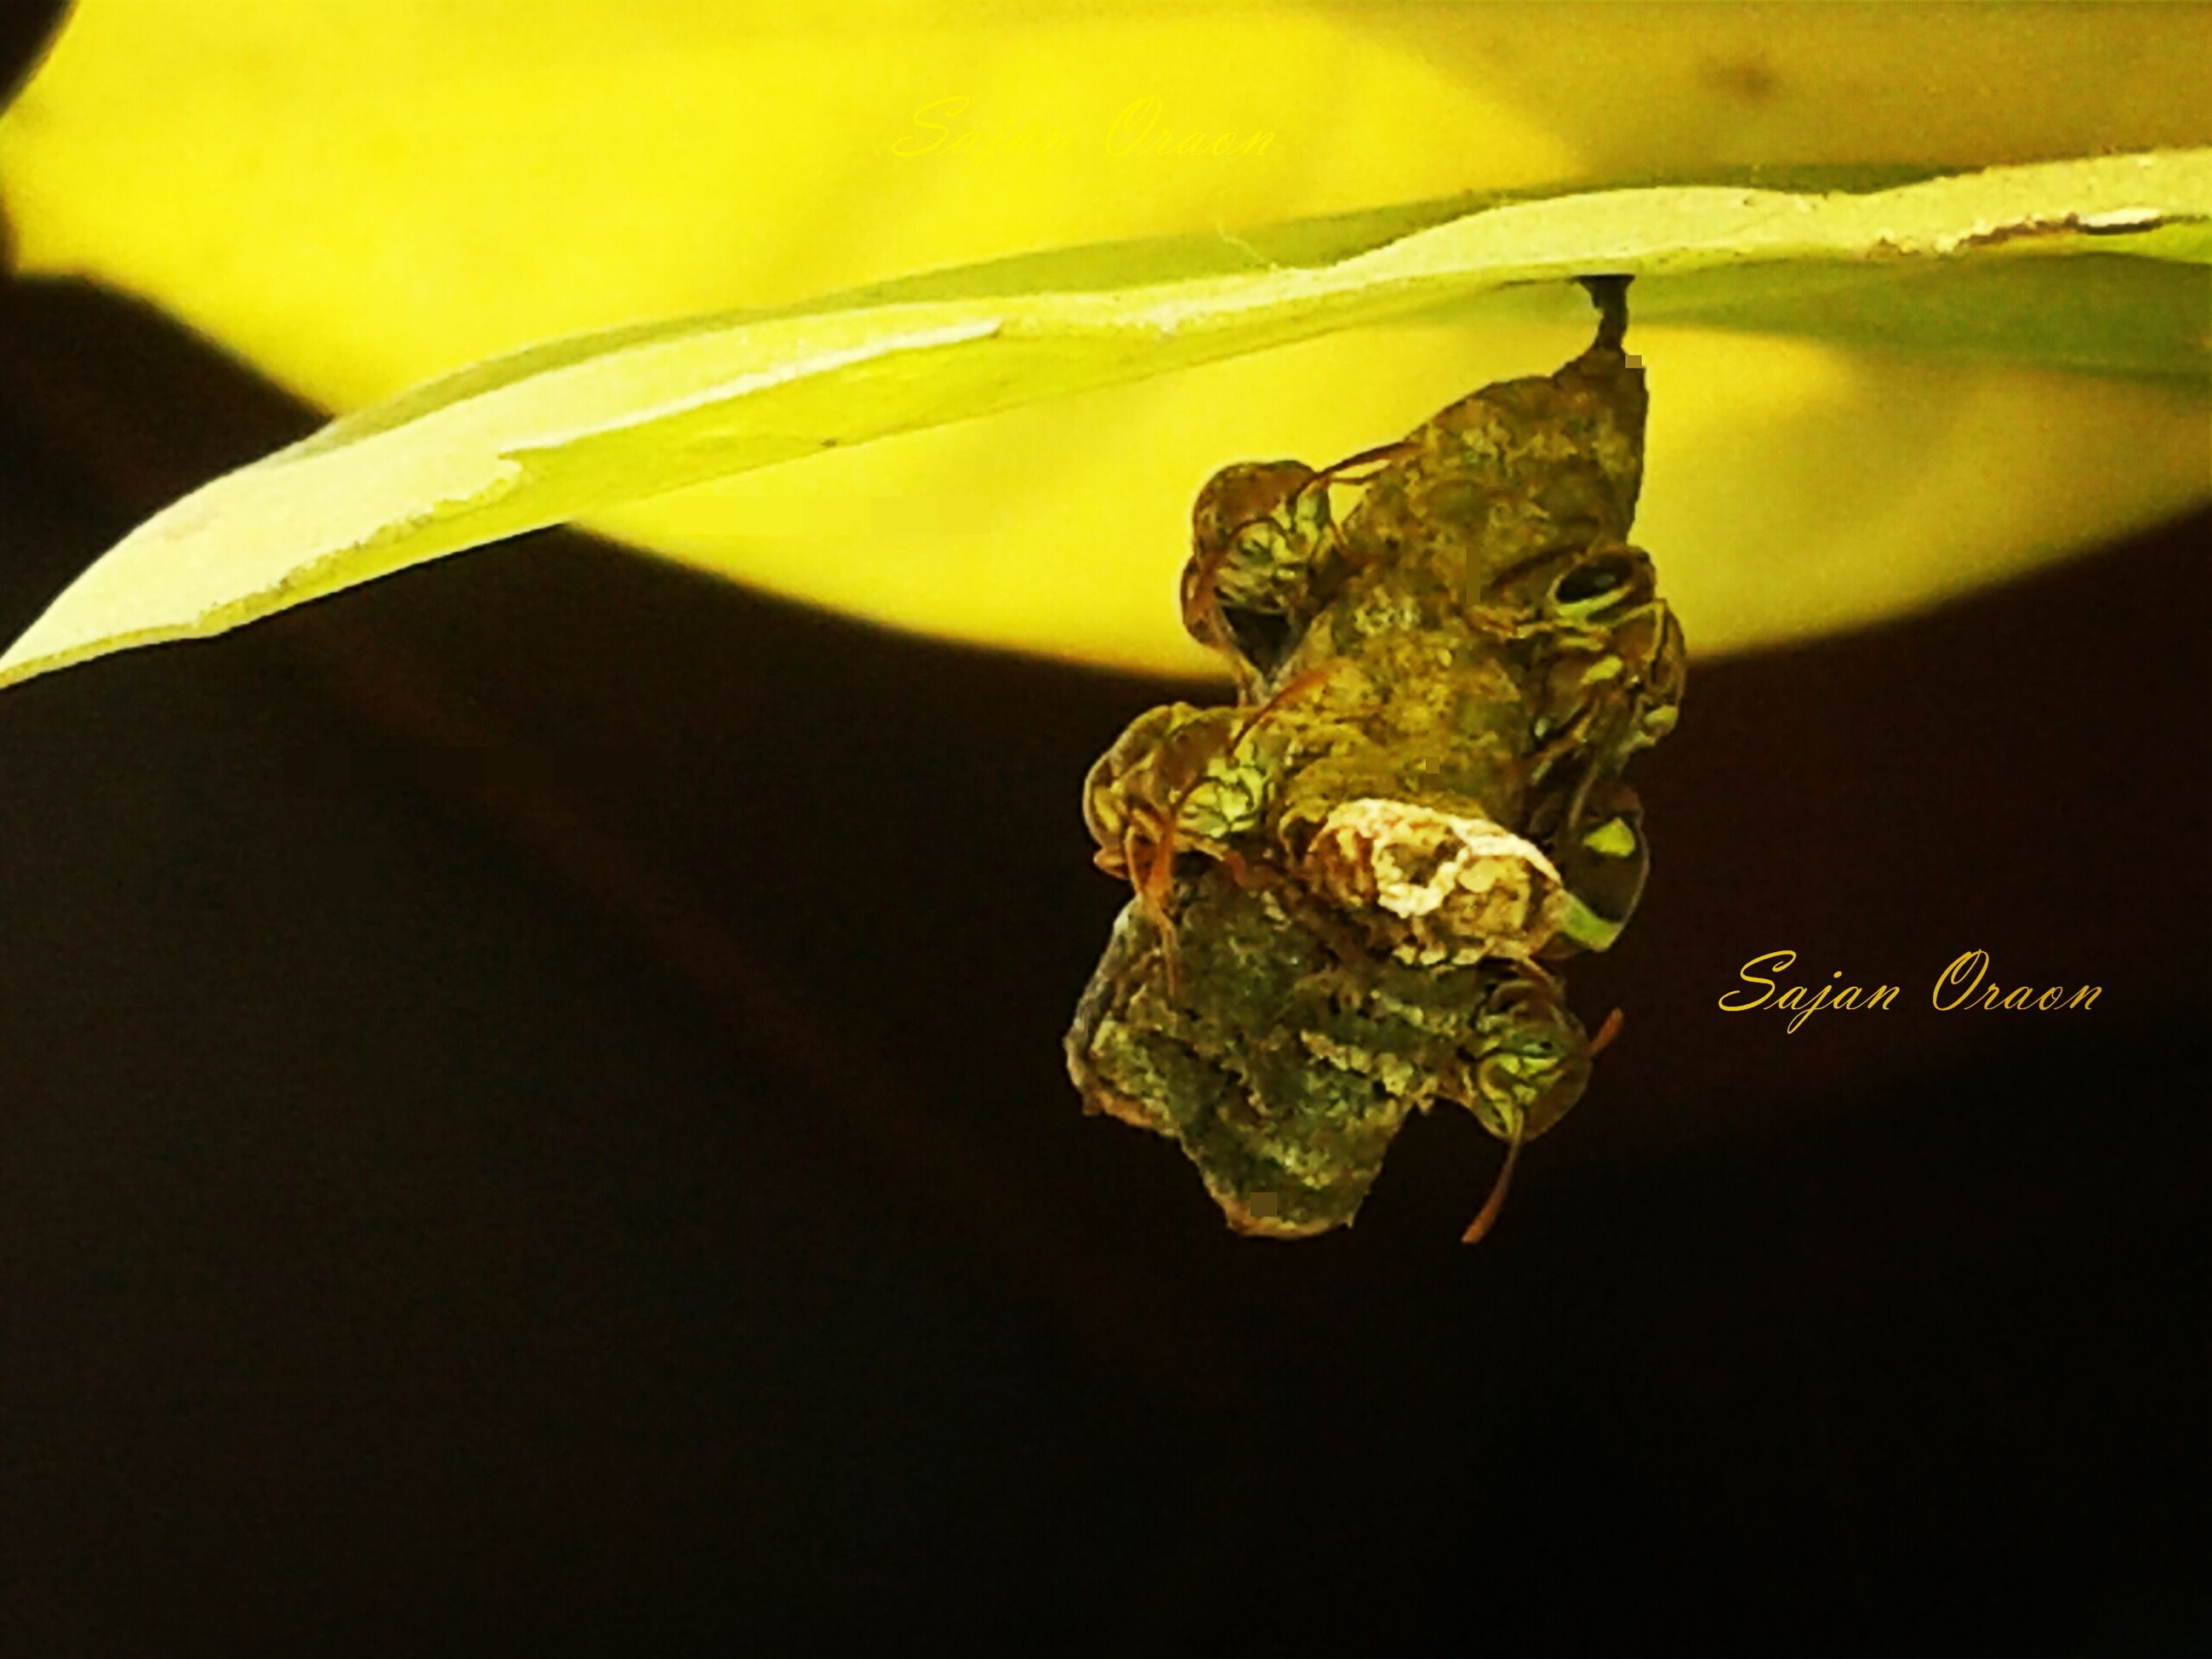 close-up, indoors, leaf, focus on foreground, one animal, selective focus, animal themes, no people, nature, insect, yellow, plant, glass - material, green color, table, fragility, studio shot, black background, reflection, hanging